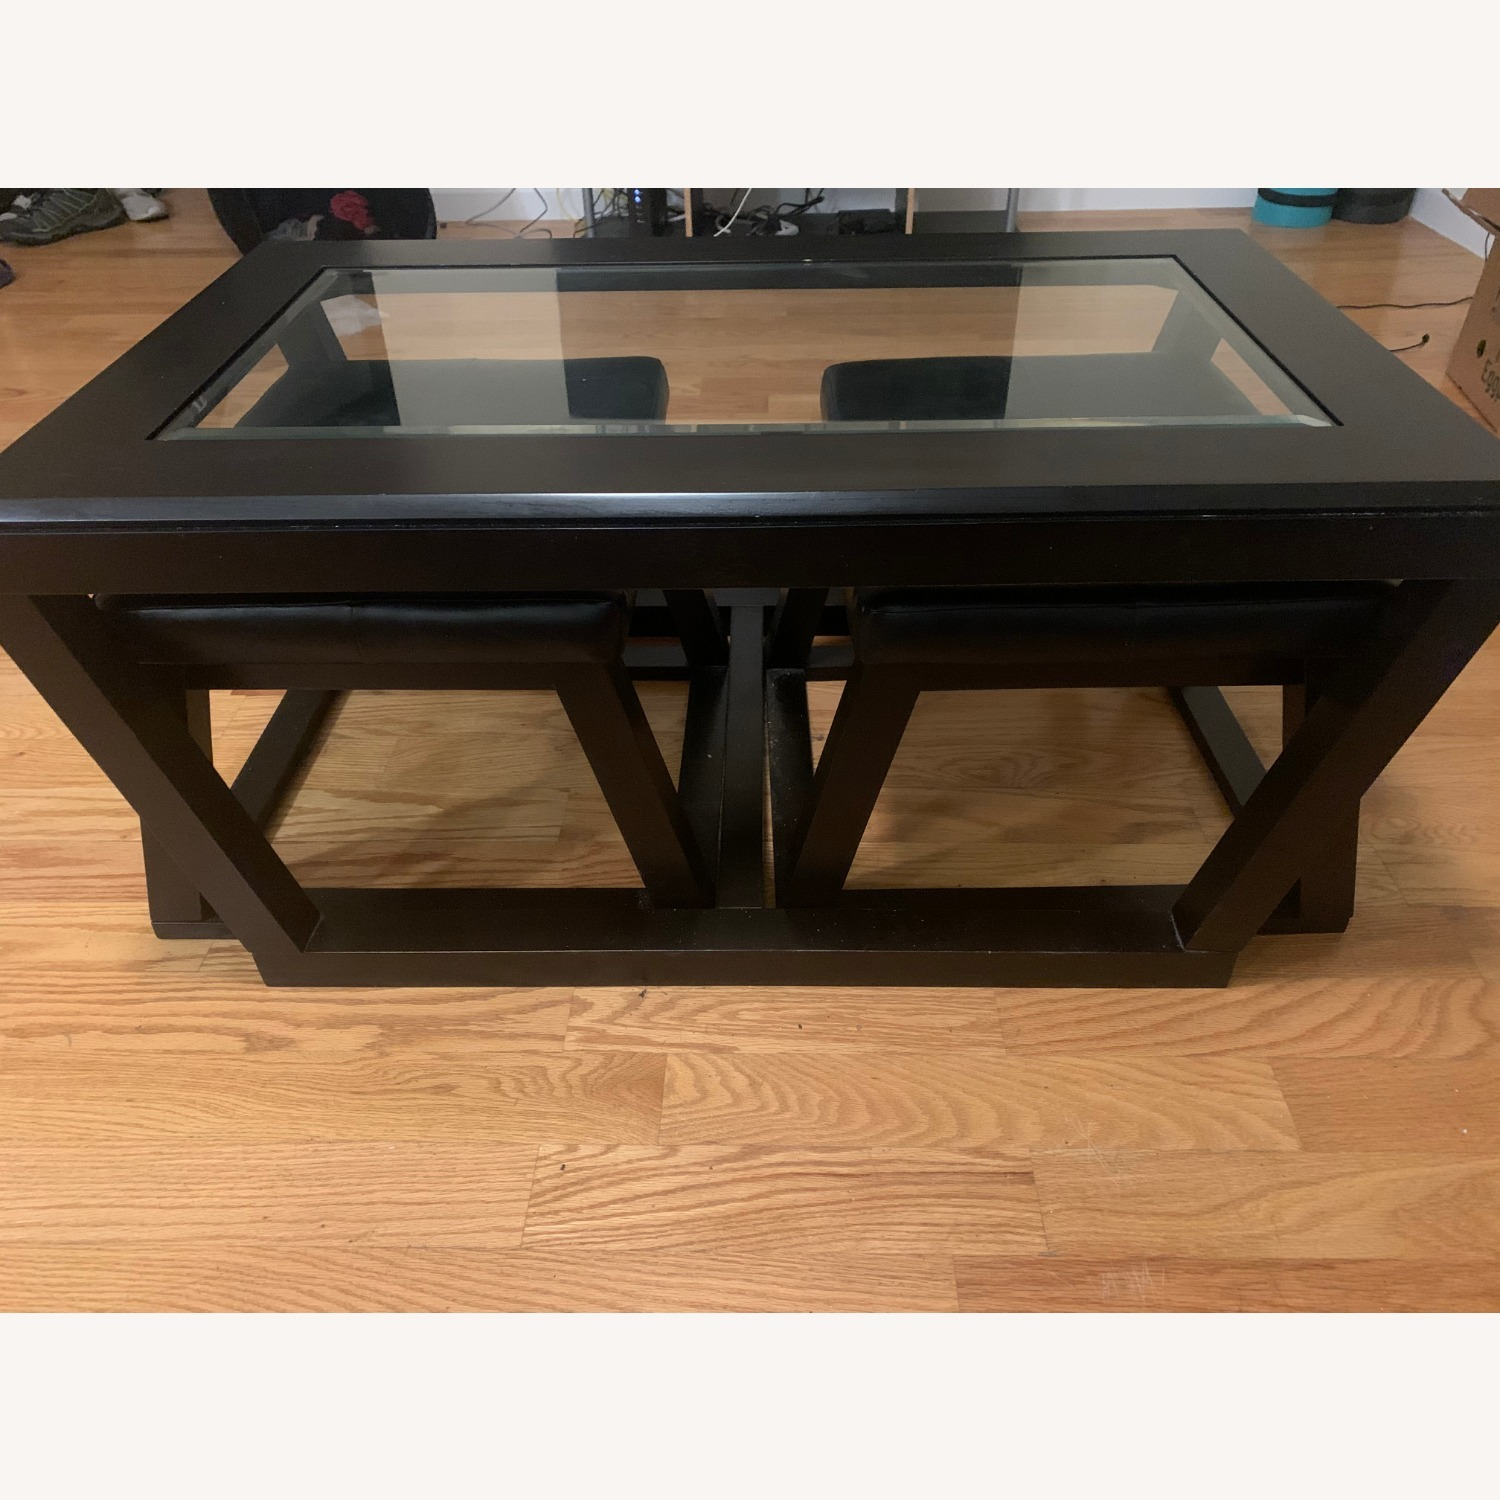 Ashley Glass Top Coffee Table with 2 Stools - image-2